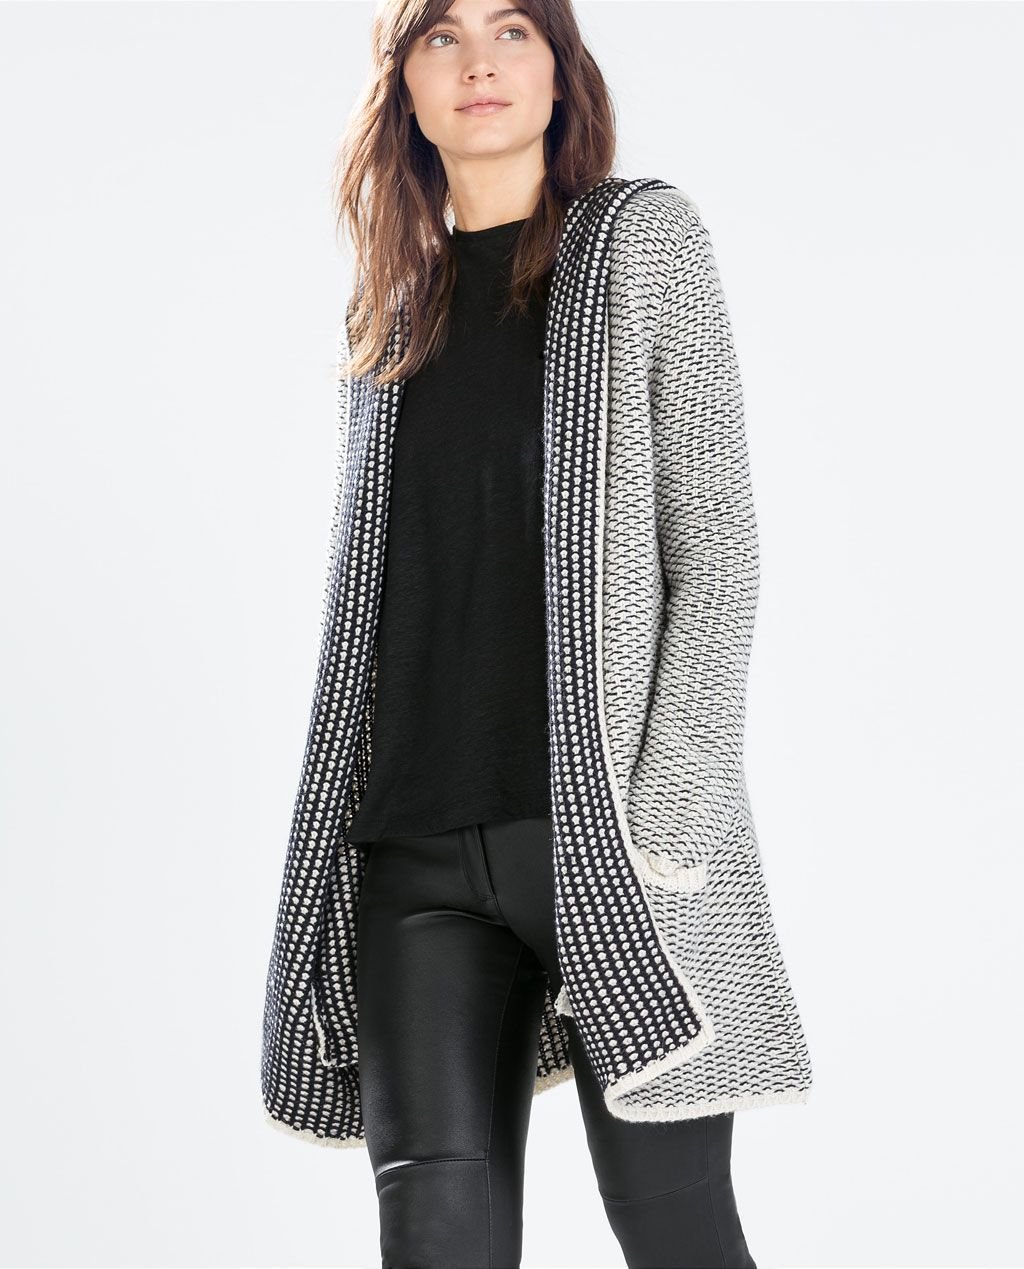 277f41d2bc4 Image 2 of KNIT HOODED CARDIGAN from Zara